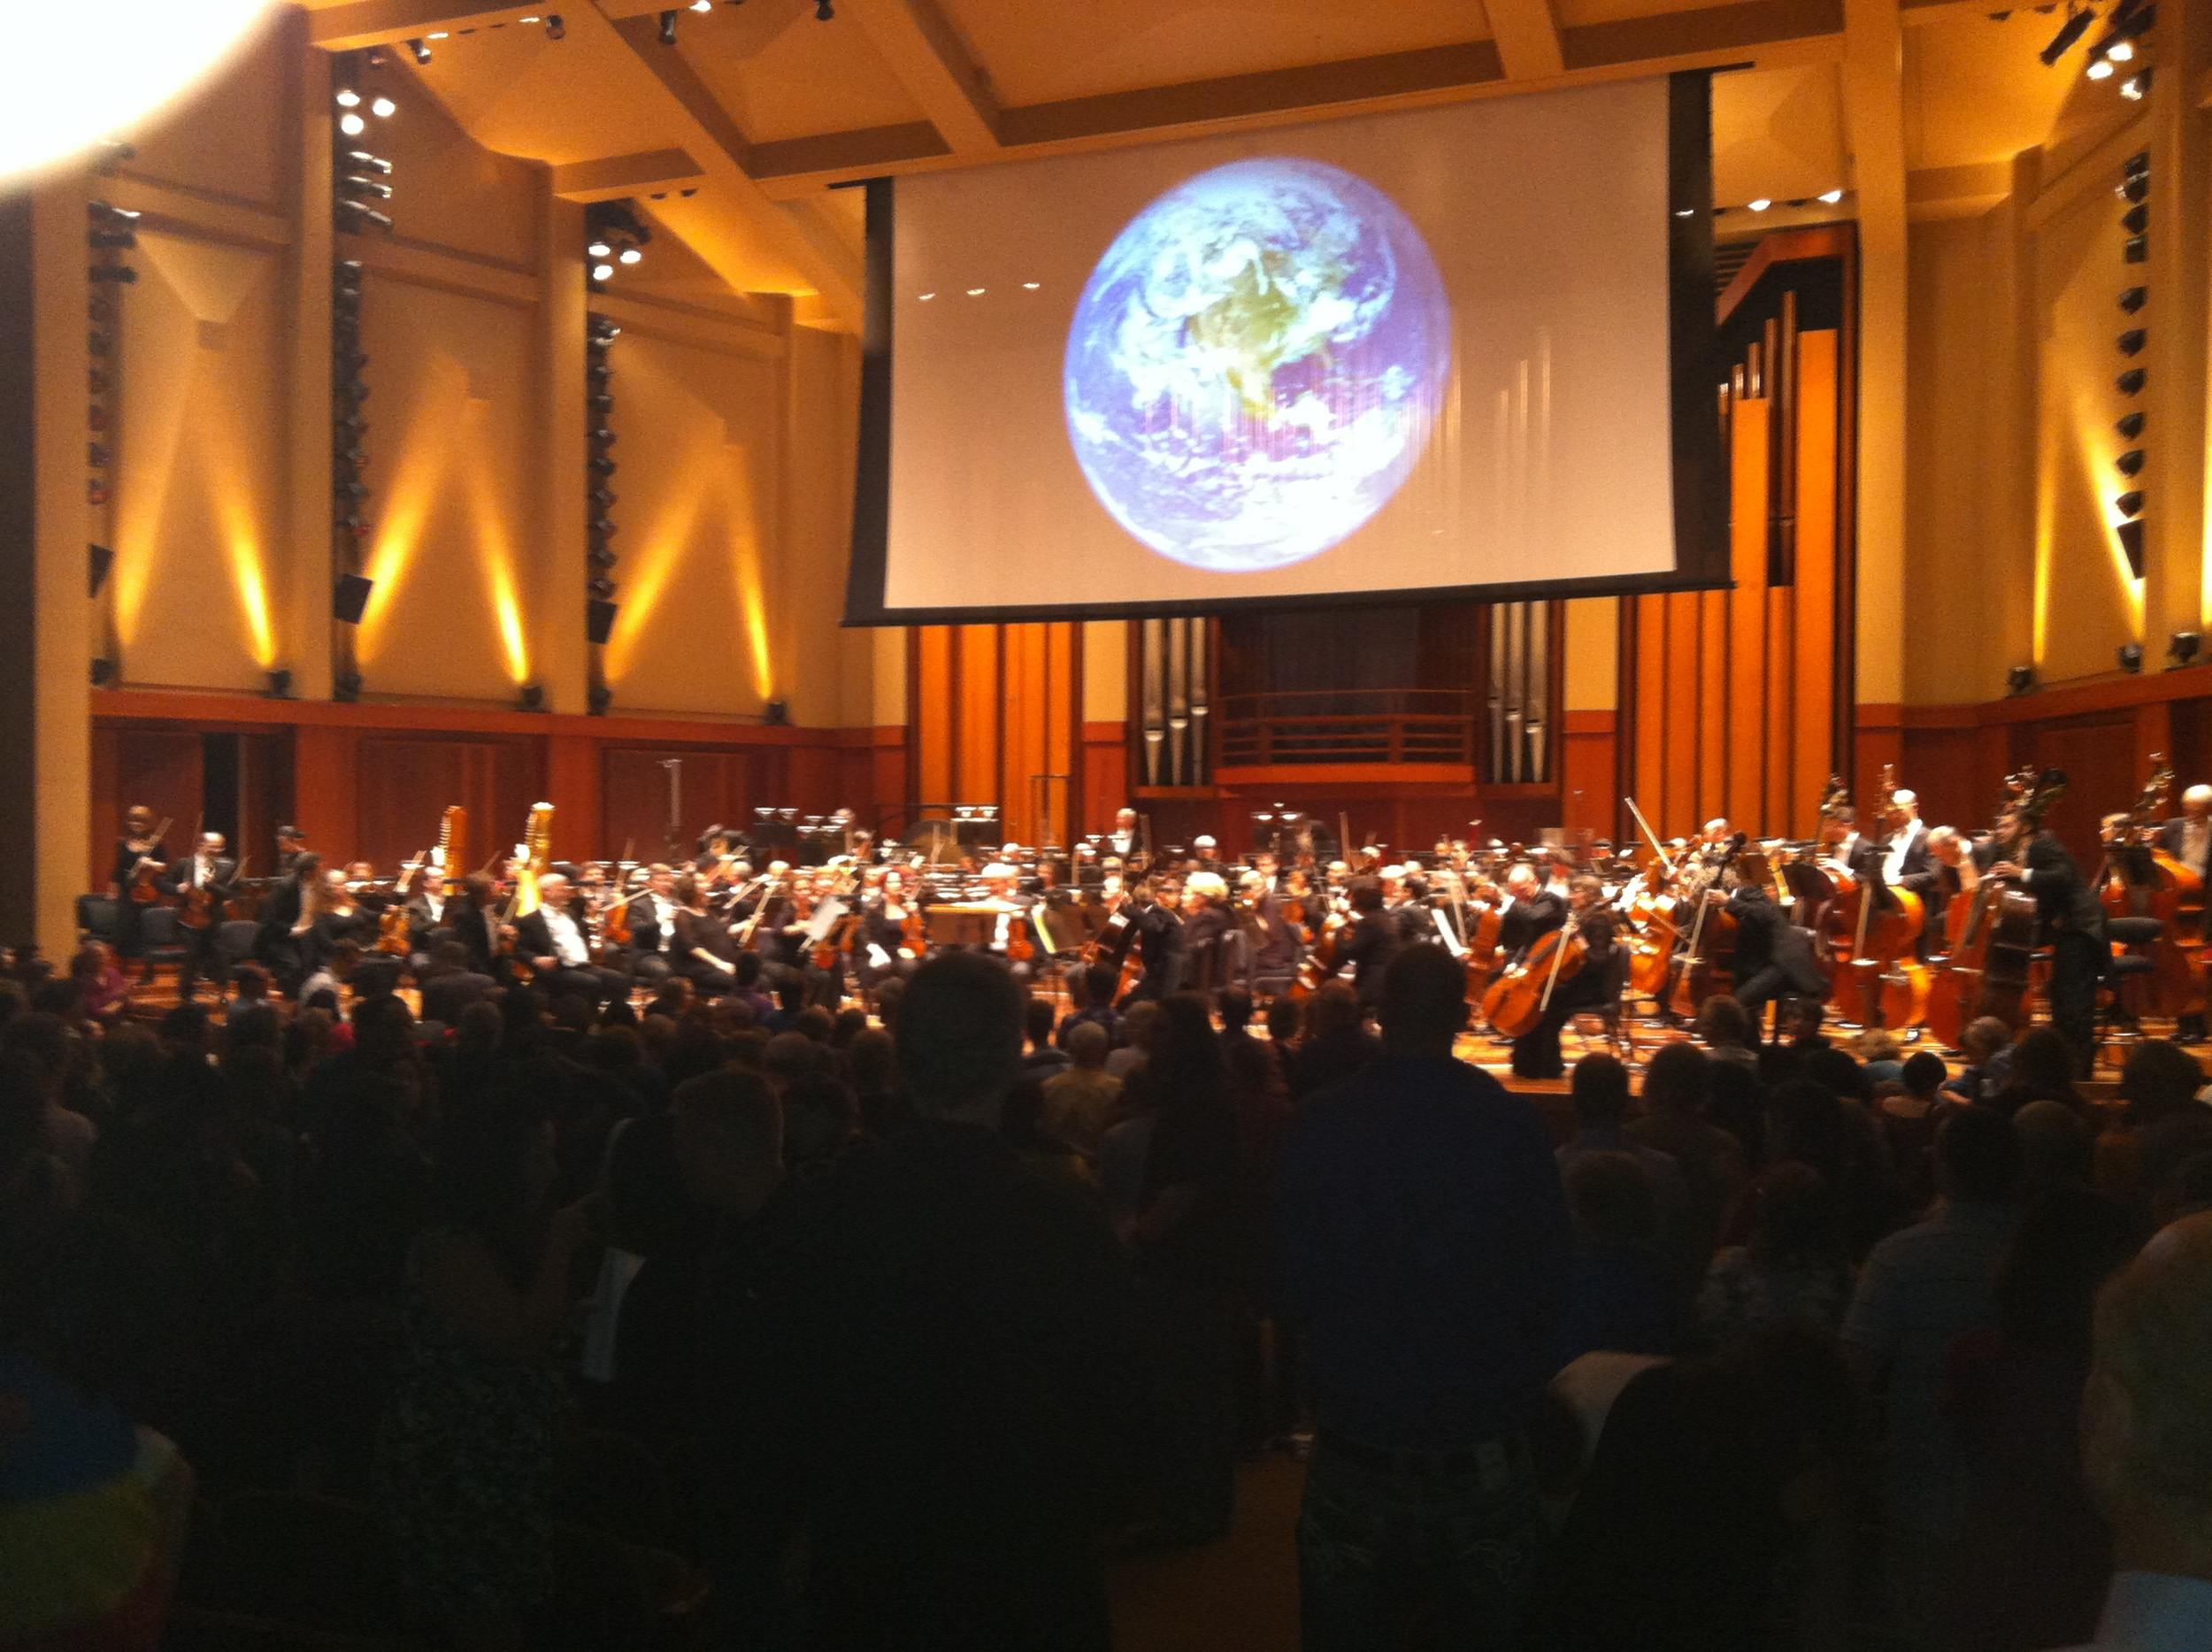 "What a stunning experience! I saw Holst's ""The Planets"" performed at Benaroya Hall with the Seattle Symphony playing. They had real life footage of each of the planets playing on a giant projection screen behind the orchestra to accompany the music. It was magical!"